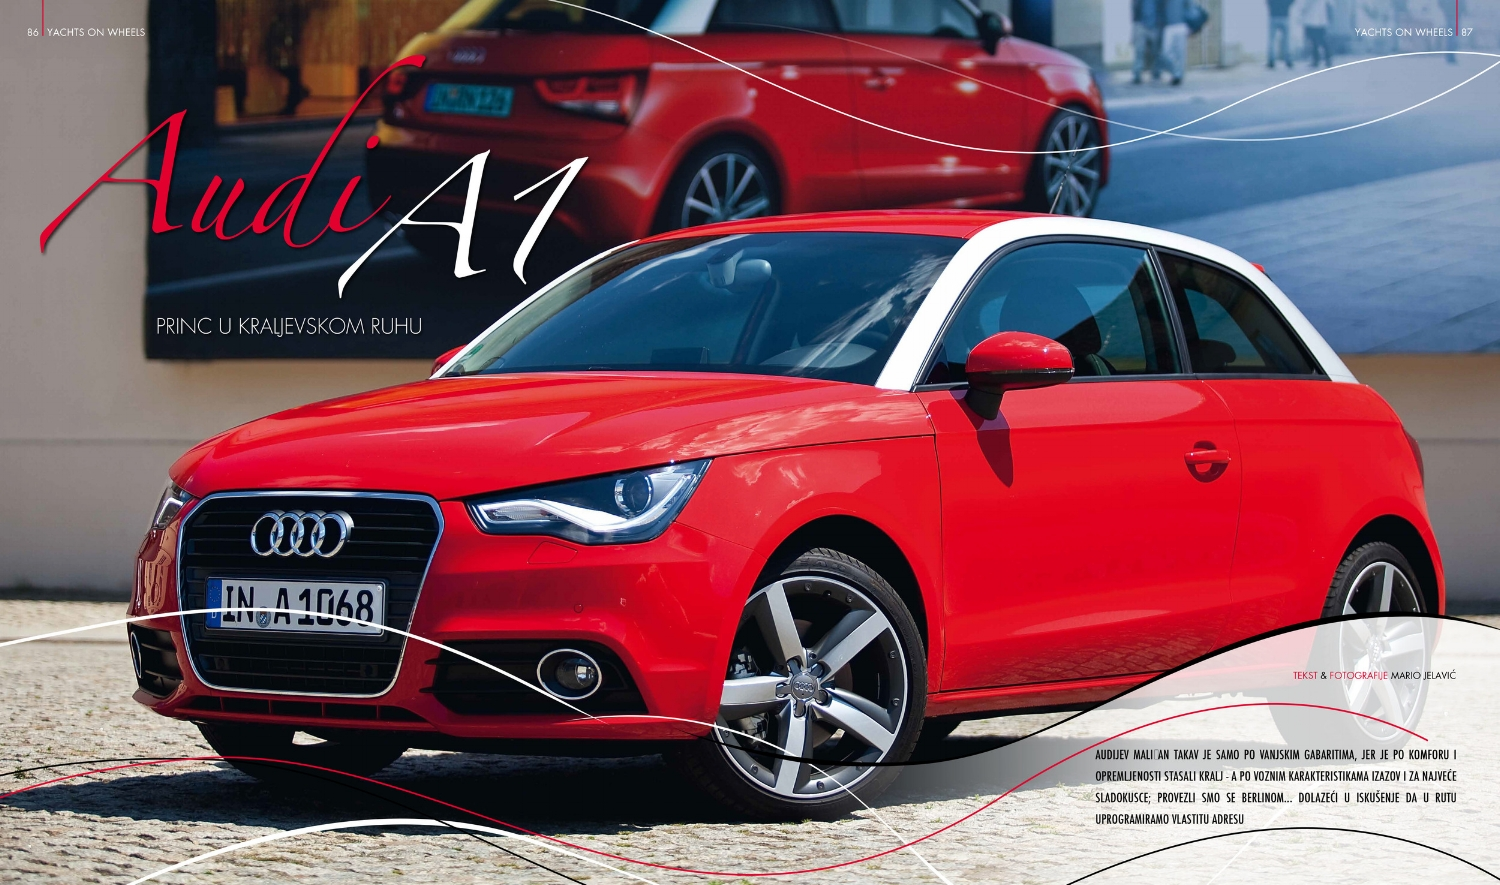 The story of Audi A1